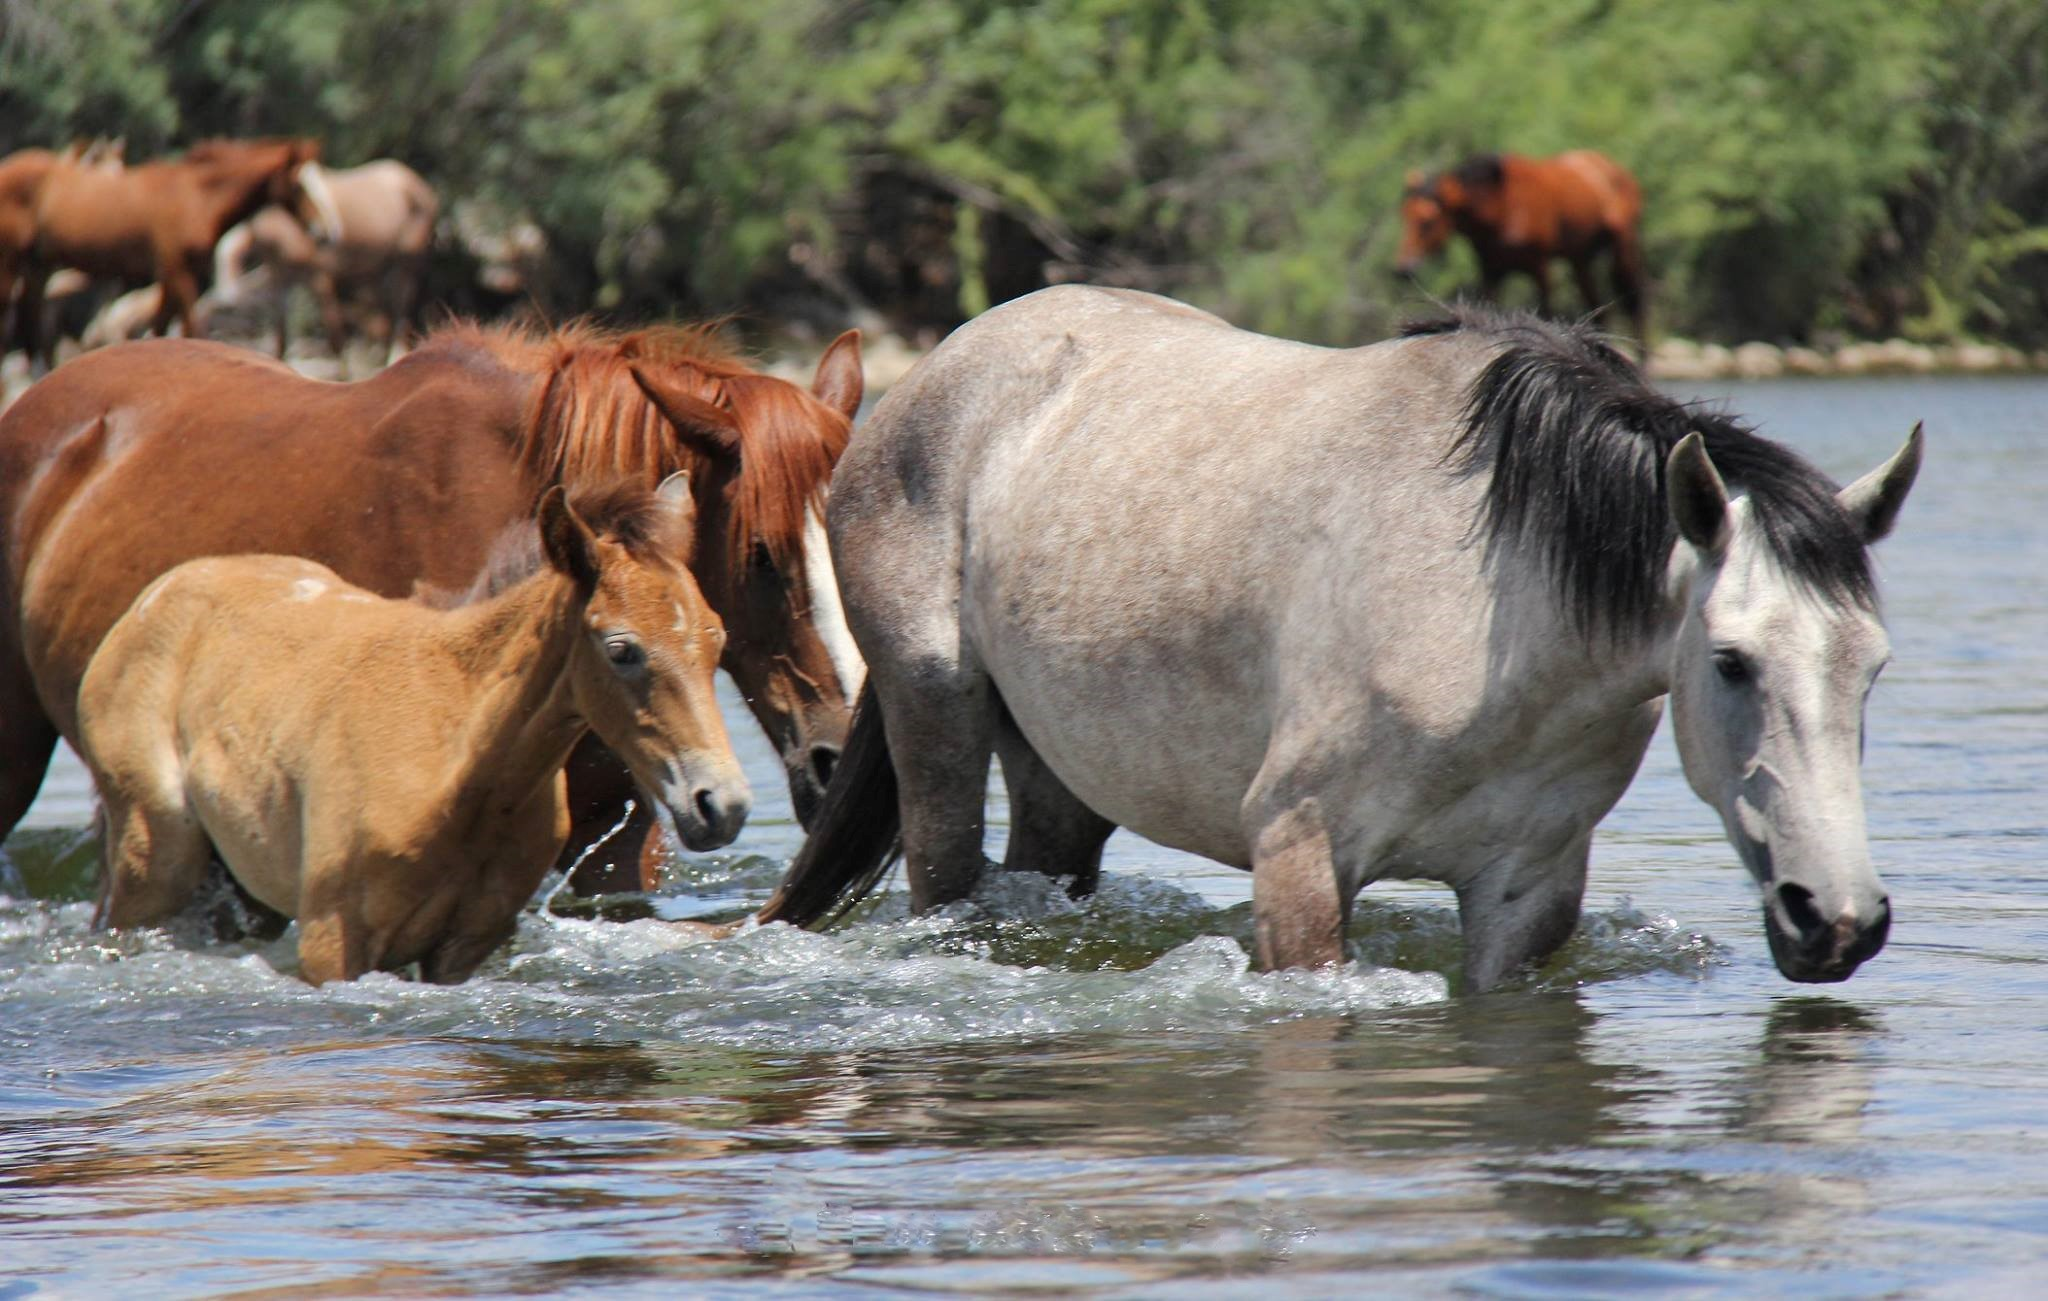 Wild horses at Verde river